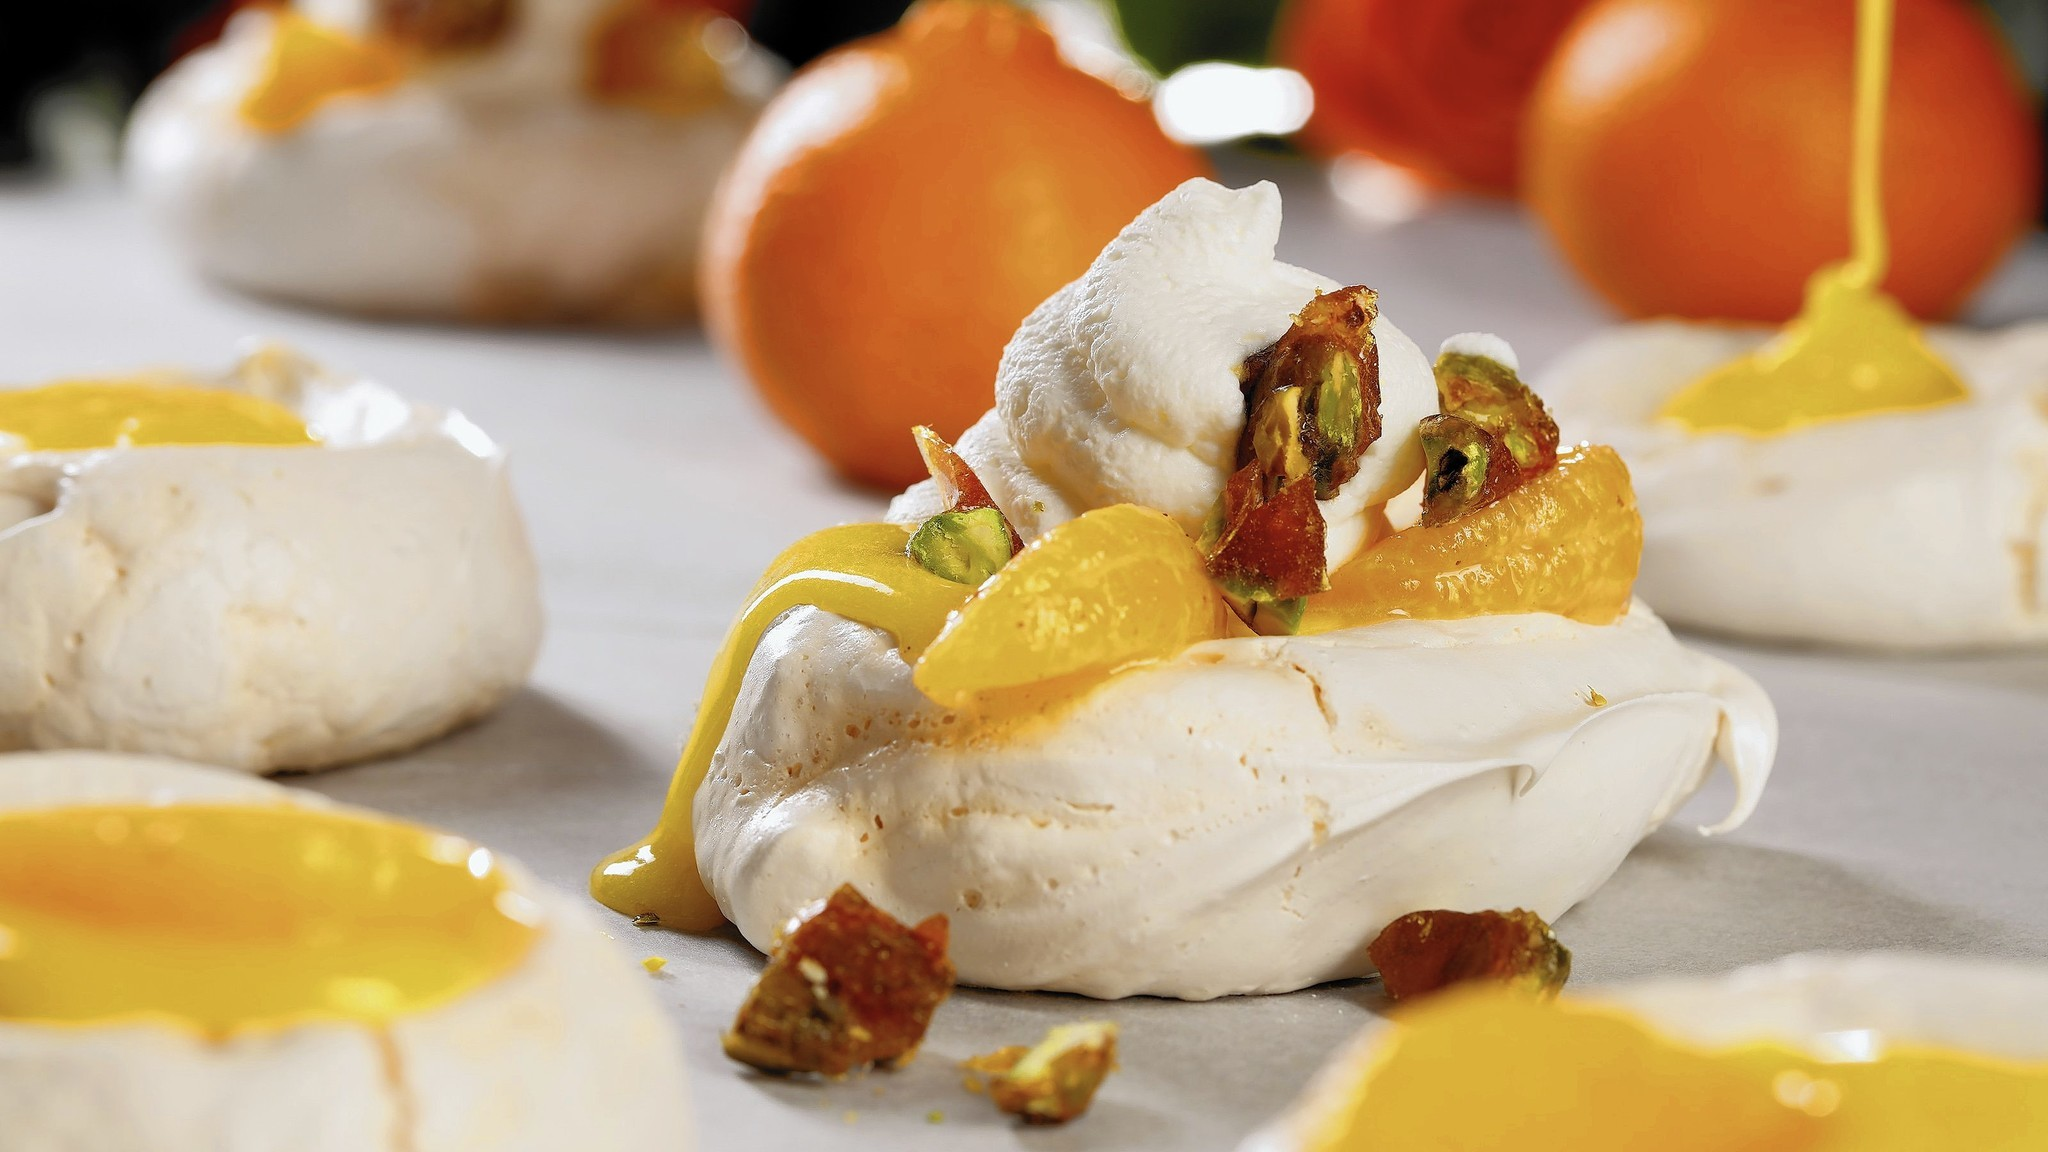 Whip up meringues to soft peaks, then load them up for Valentine's Day treats